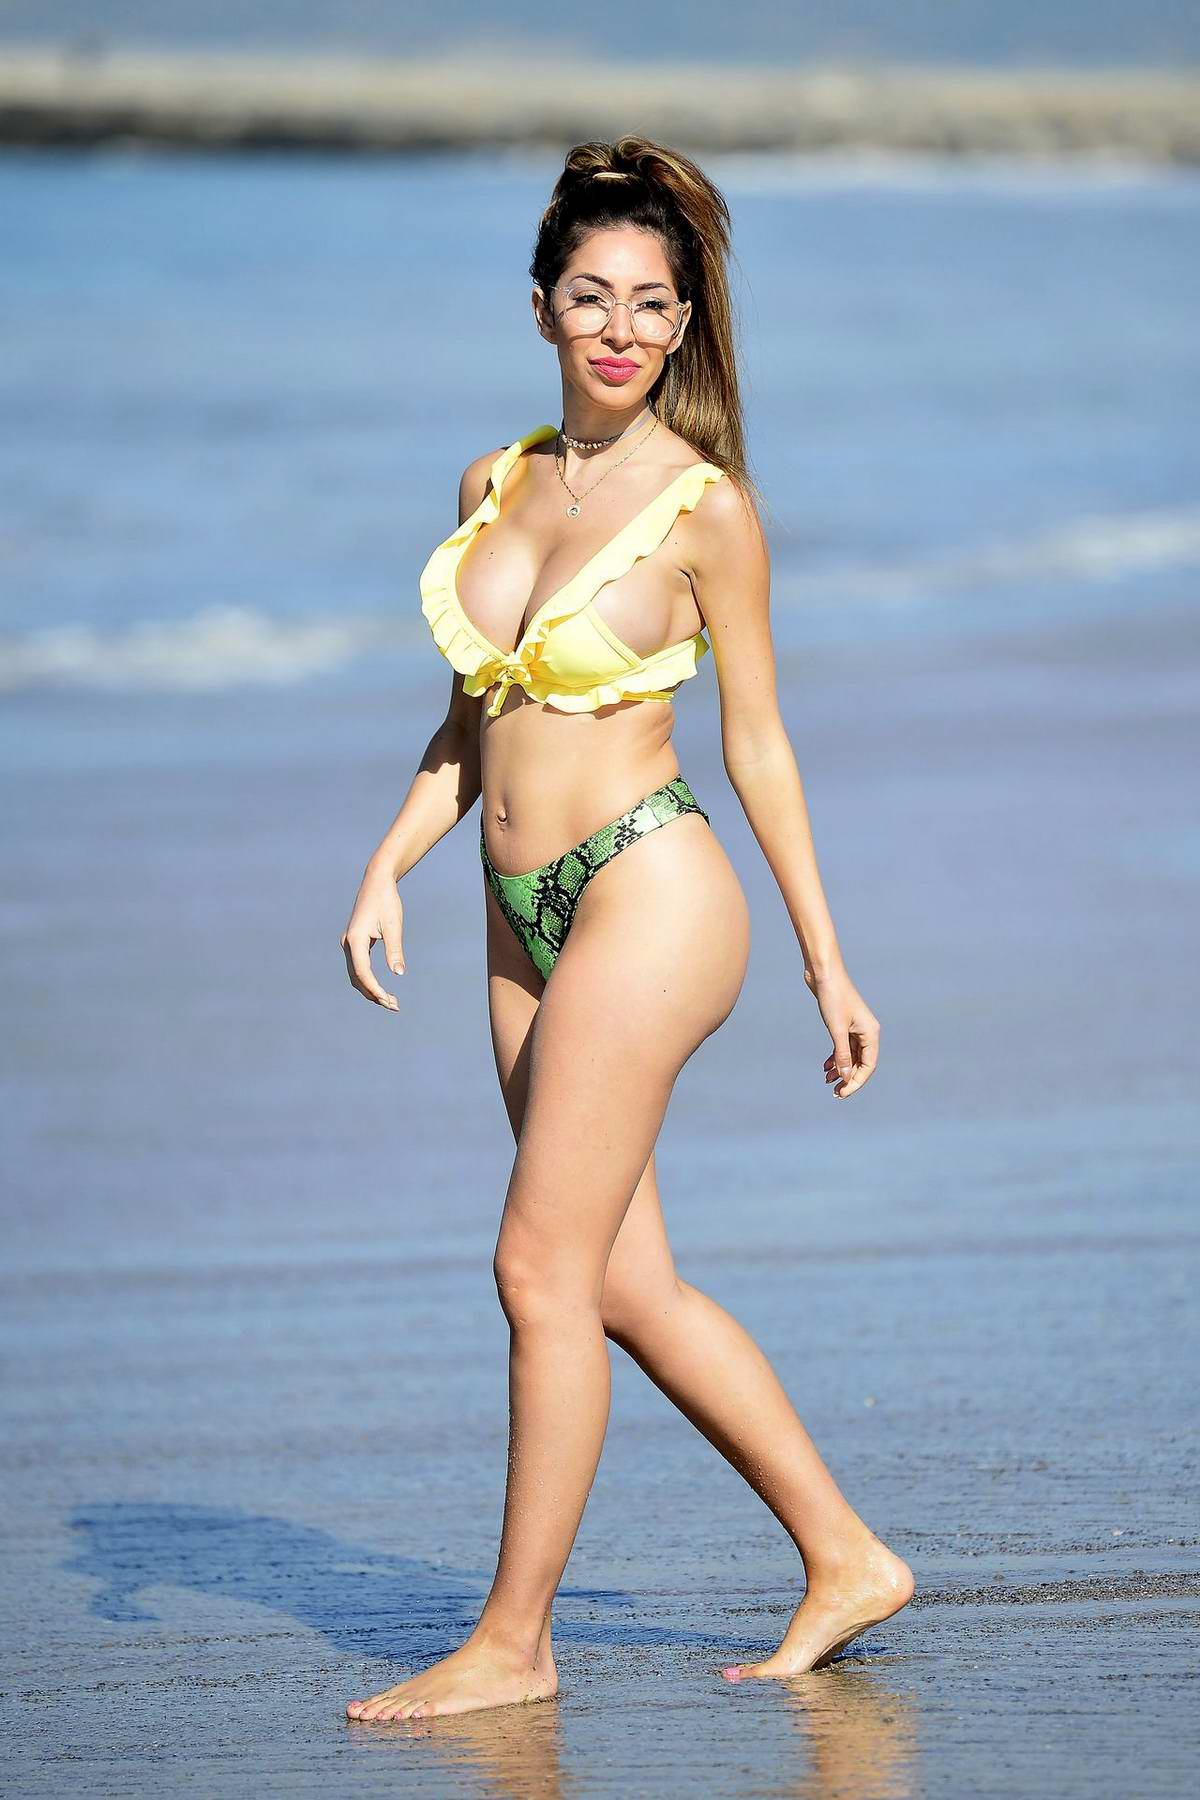 Farrah Abraham poses in a colorful bikini for a PrettyLittleThing photoshoot at the beach in Malibu, California